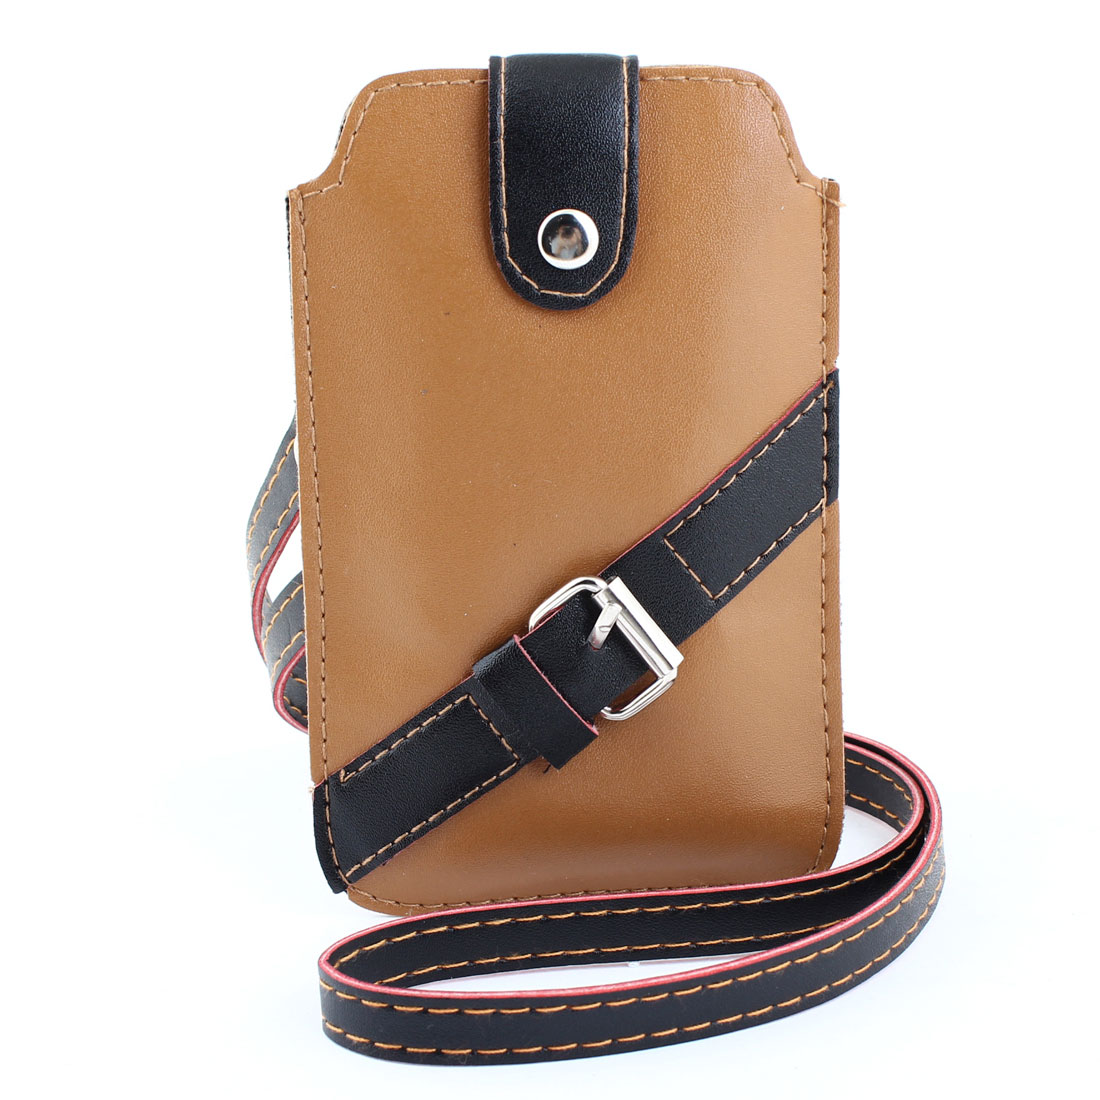 Press Button Closure Brown Black Faux Leather Mobile Phone Bag w Neck Strap